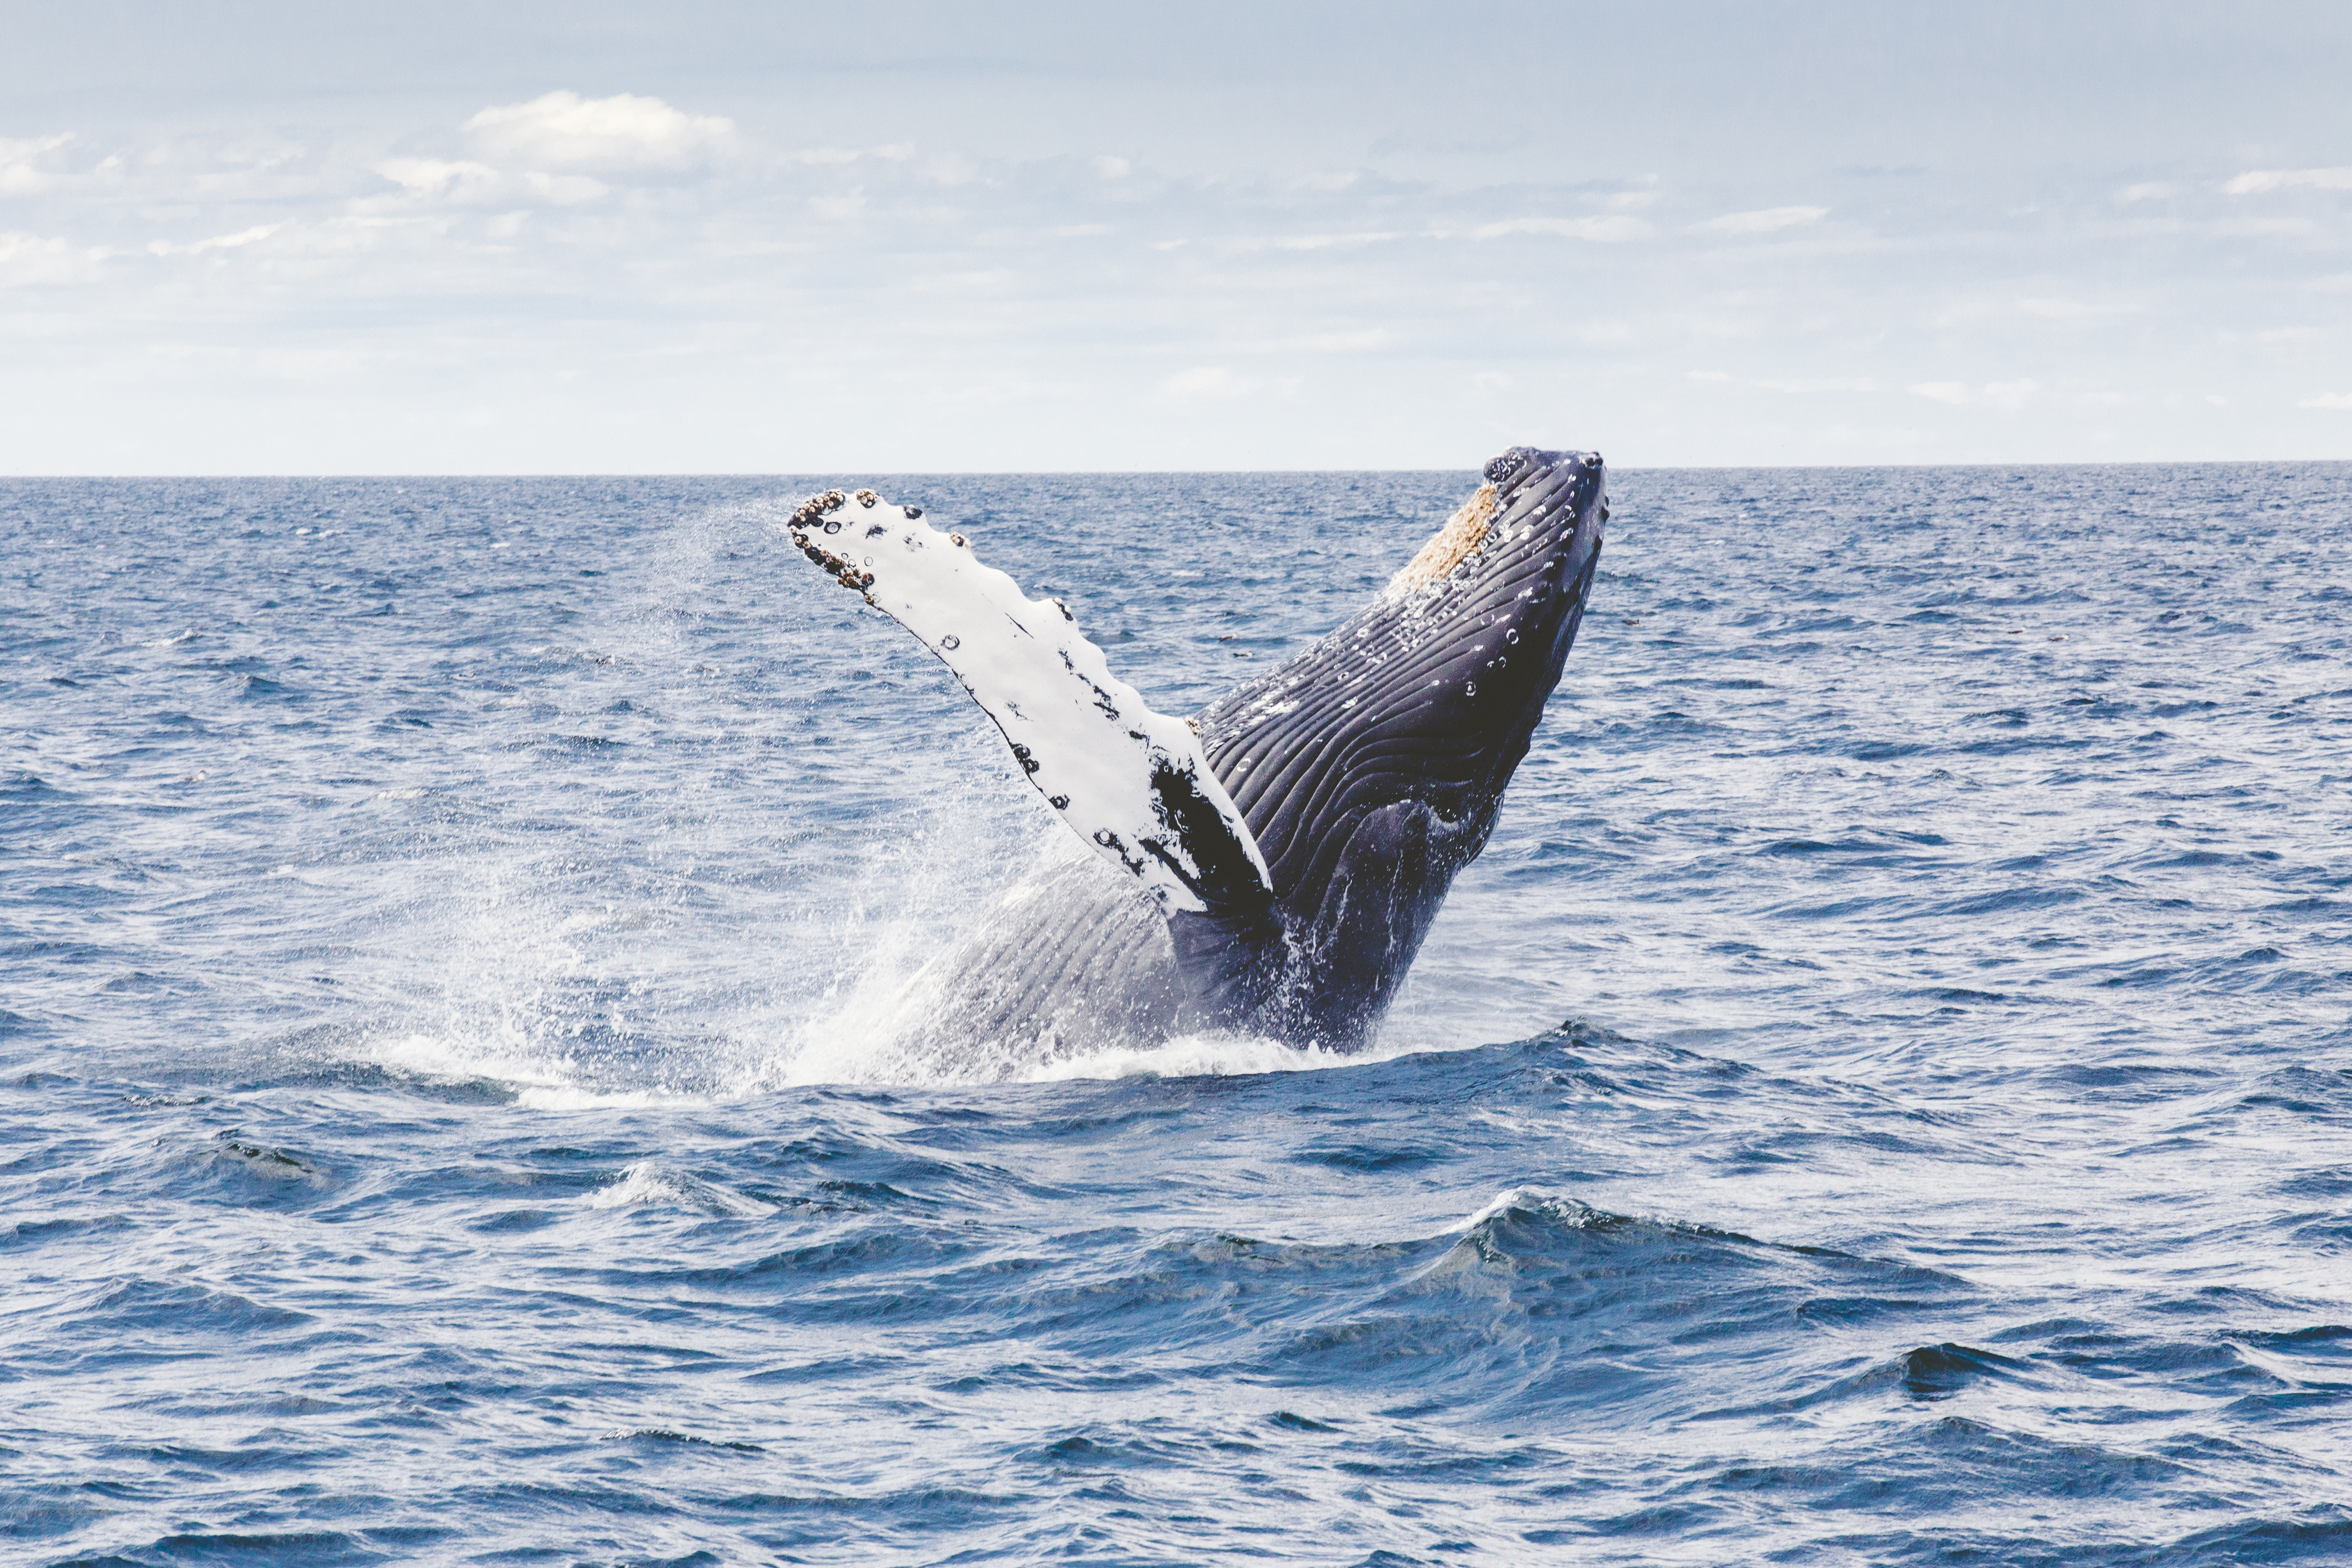 Jumping whale, water, out of the water, whale, animals, big, mammal, sperm whale, ocean, sea, water, outside